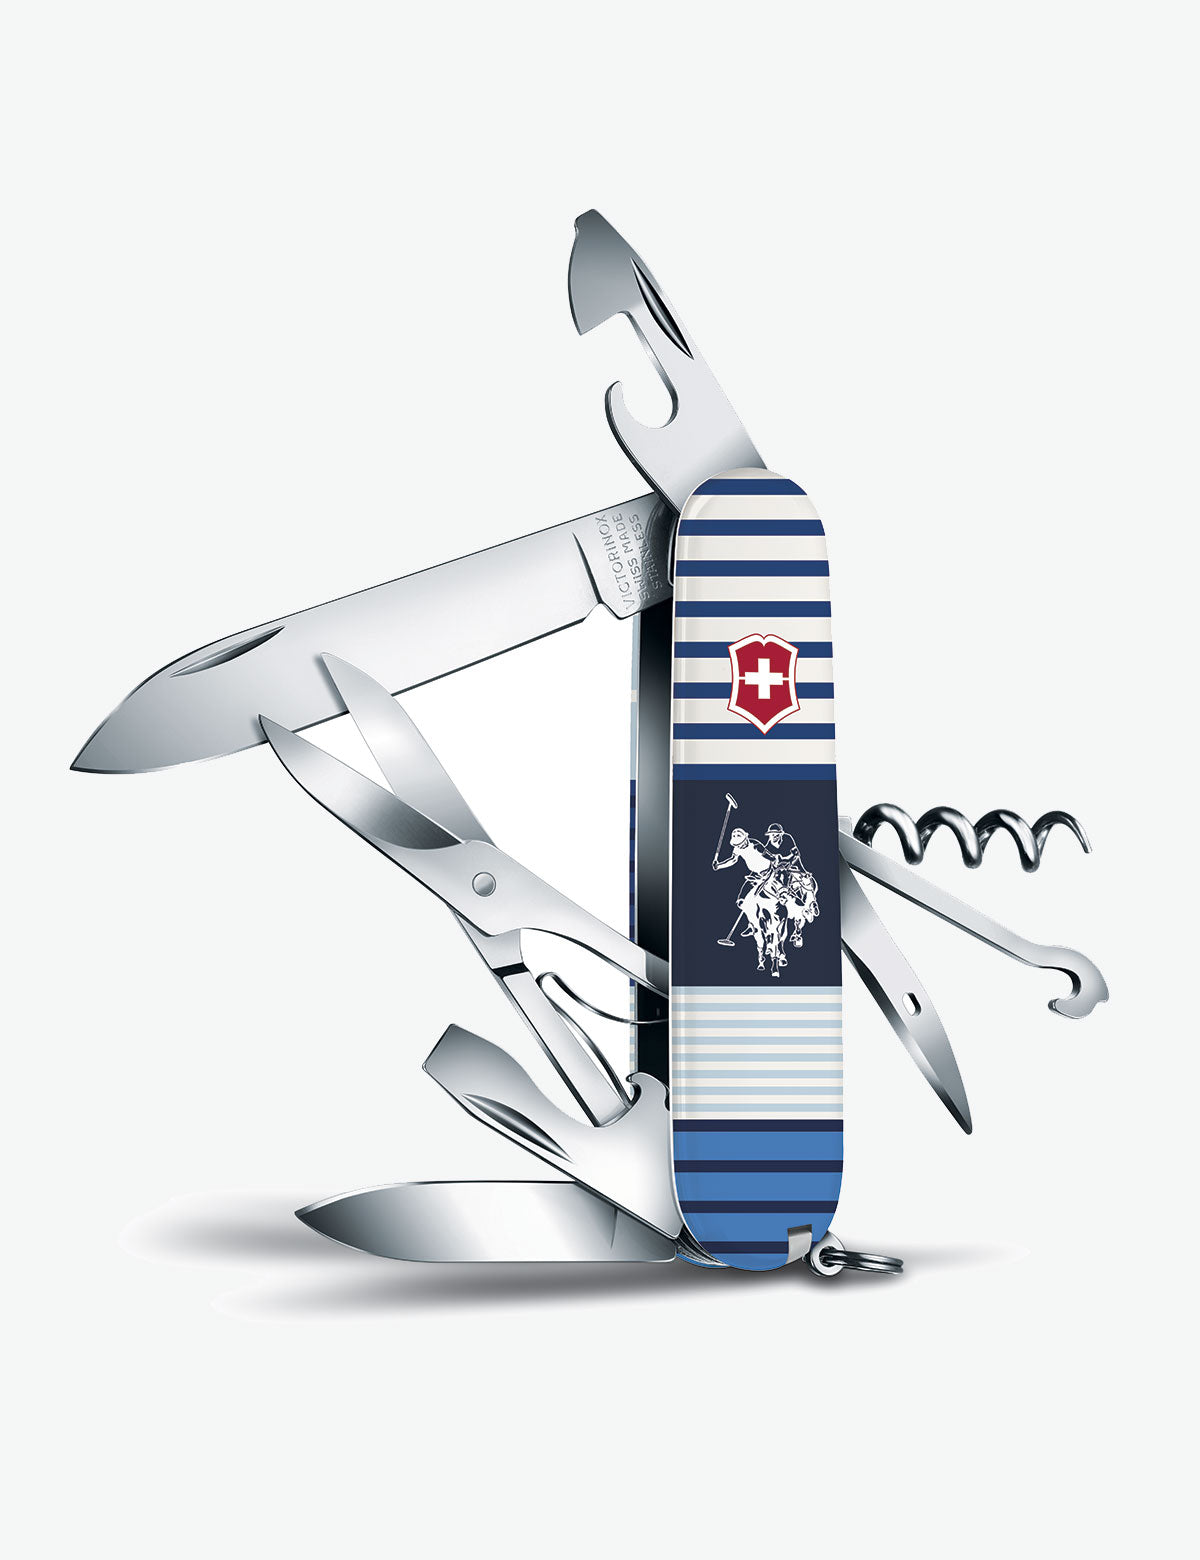 CLIMBER BLOCKED STRIPES 91MM SWISS ARMY POCKET KNIFE - U.S. Polo Assn.